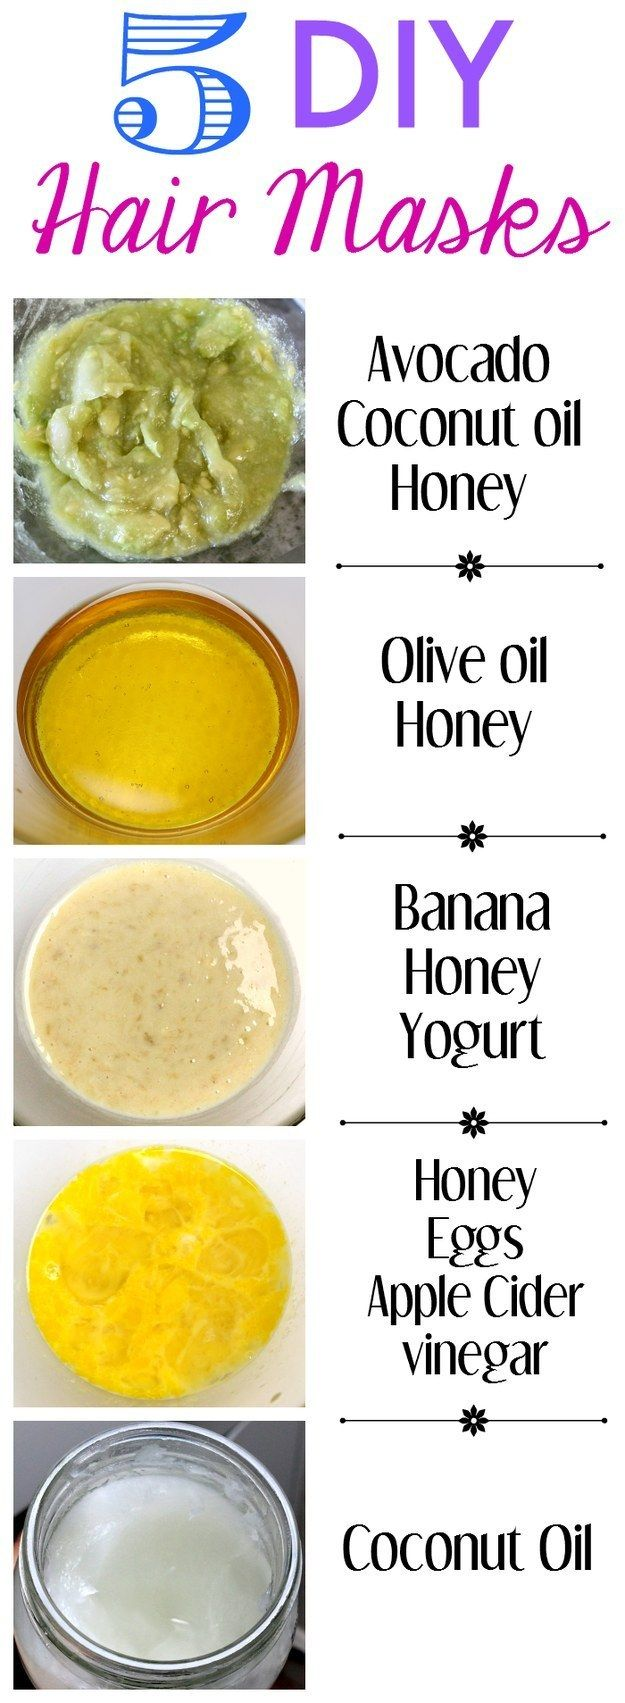 Homemade recipes for restoring your hair